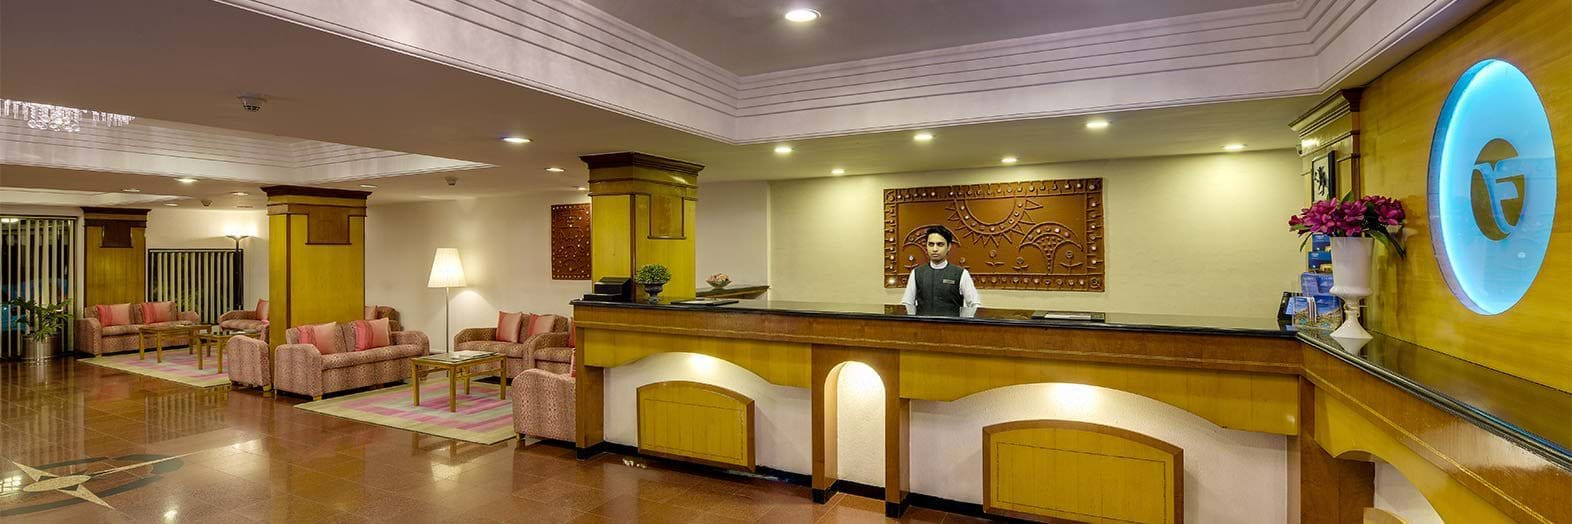 Hotels in Vapi - Fortune Park Galaxy